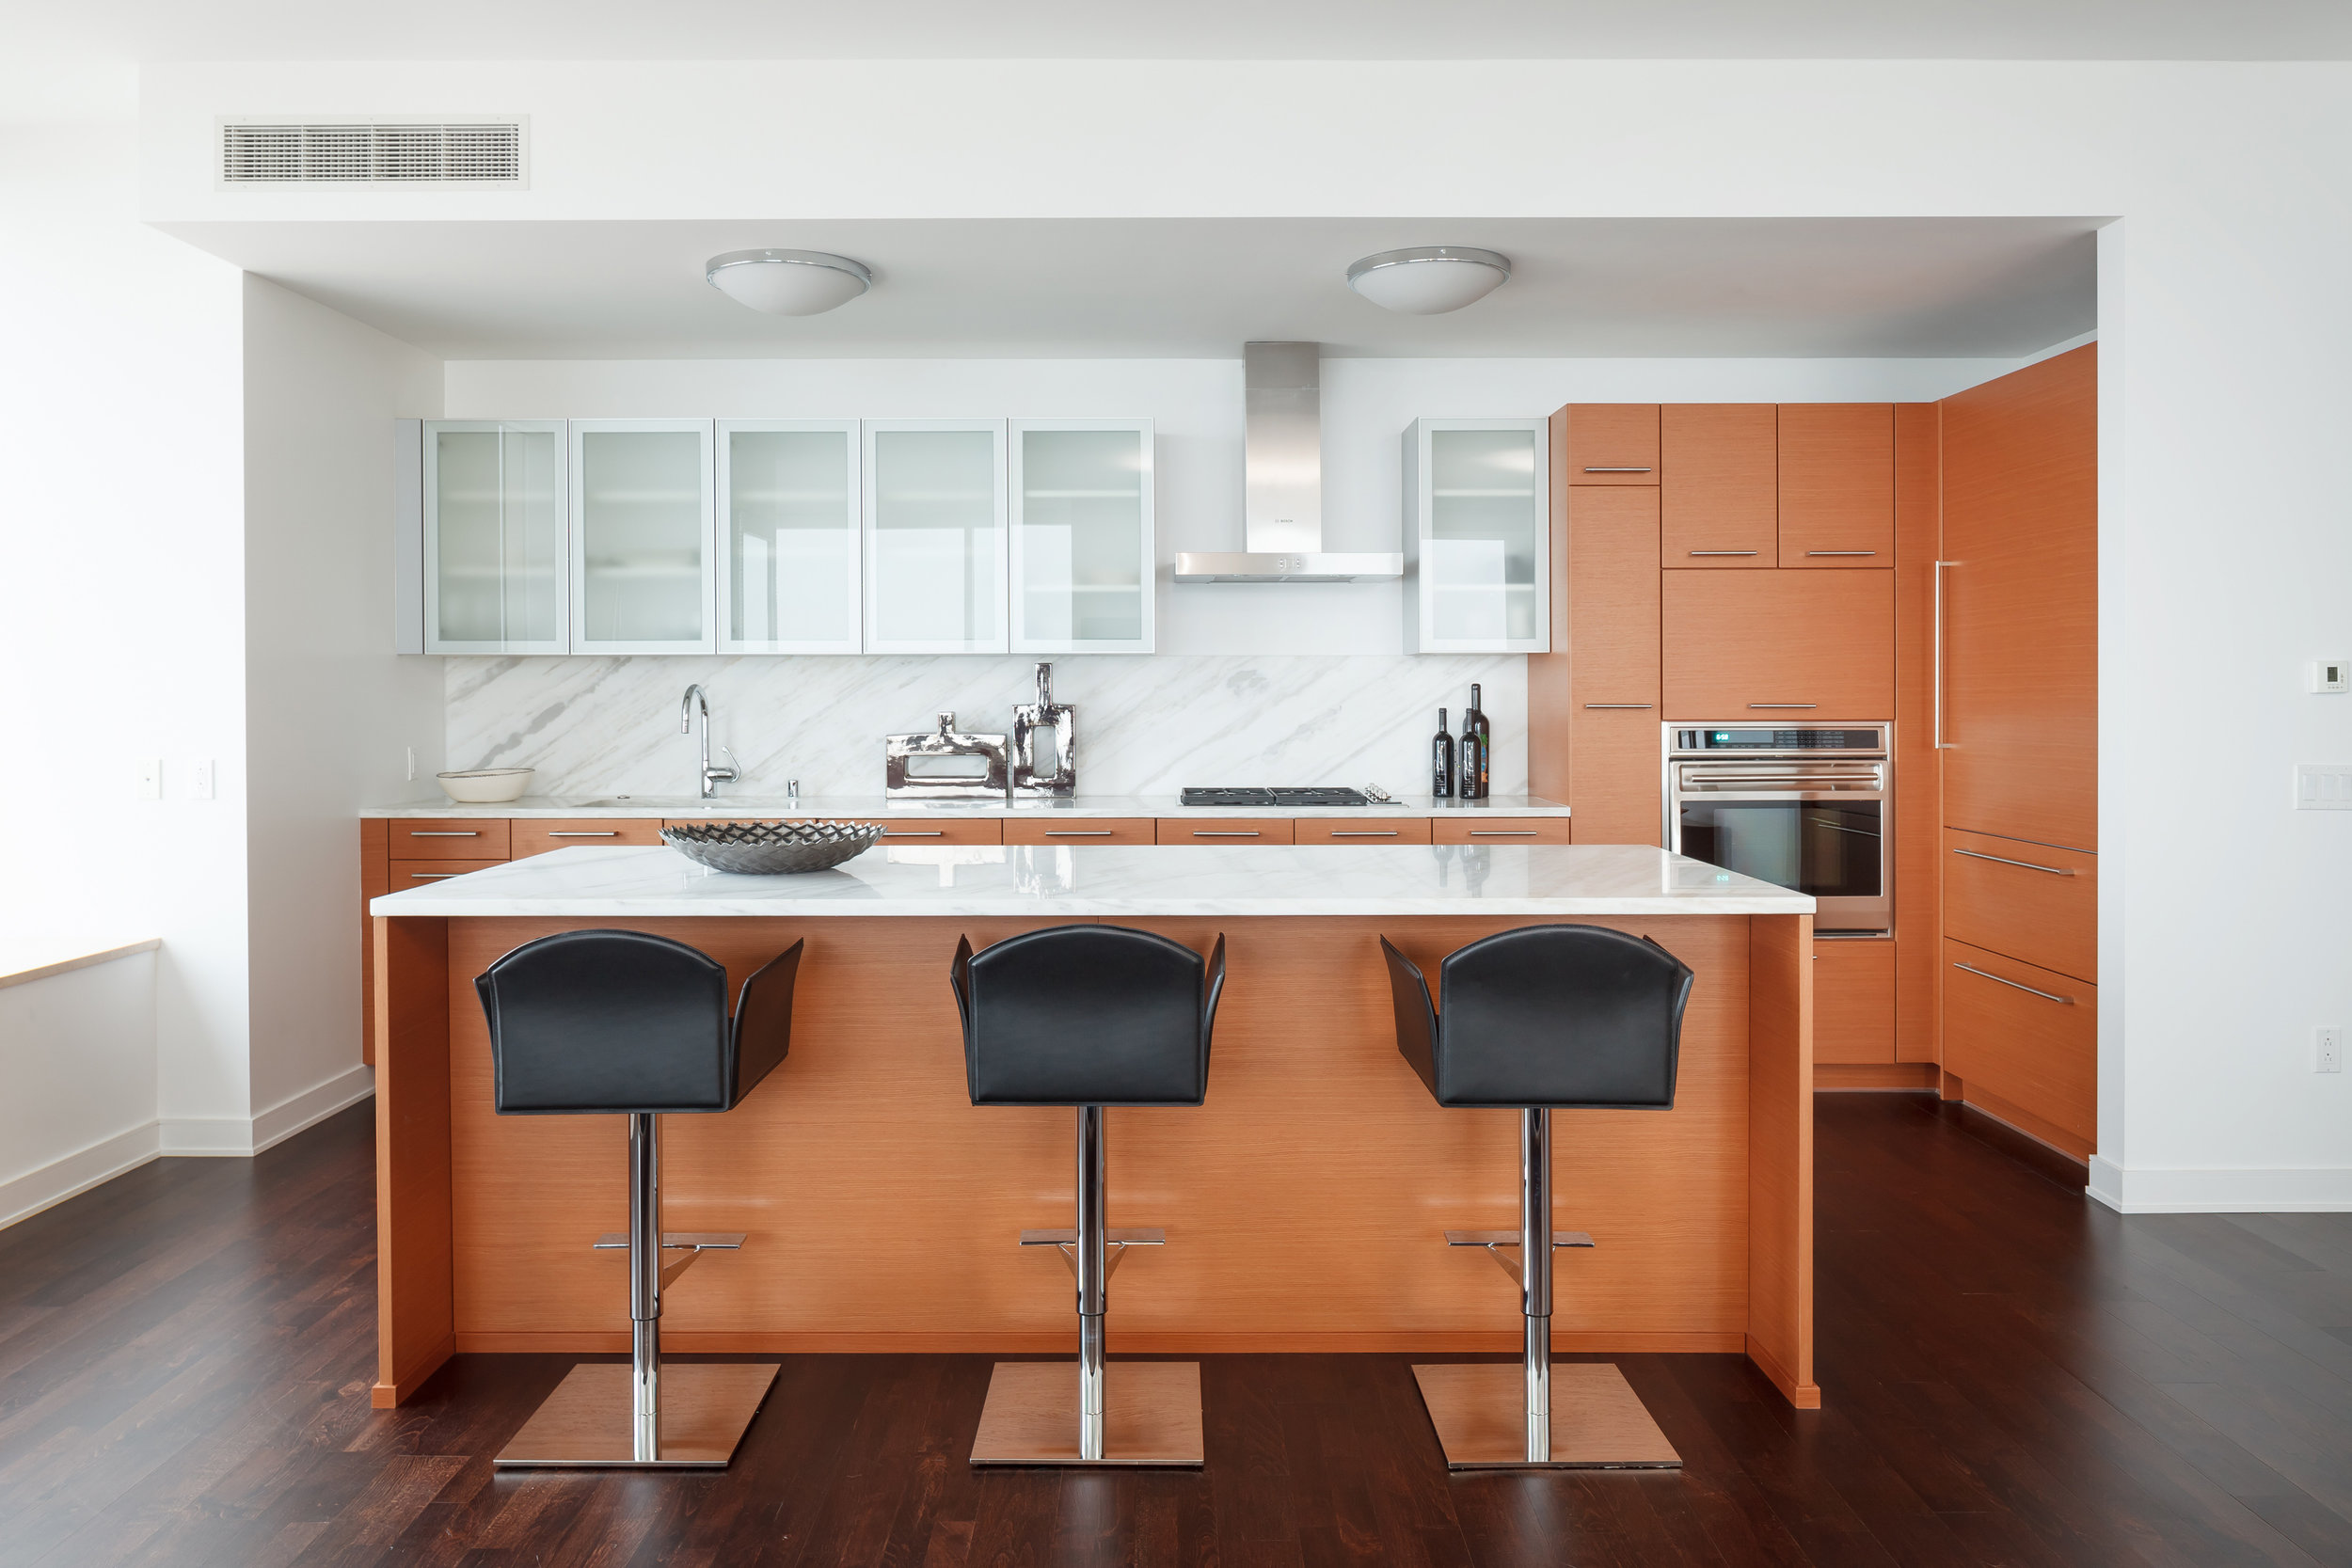 Kitchen_9064.jpg